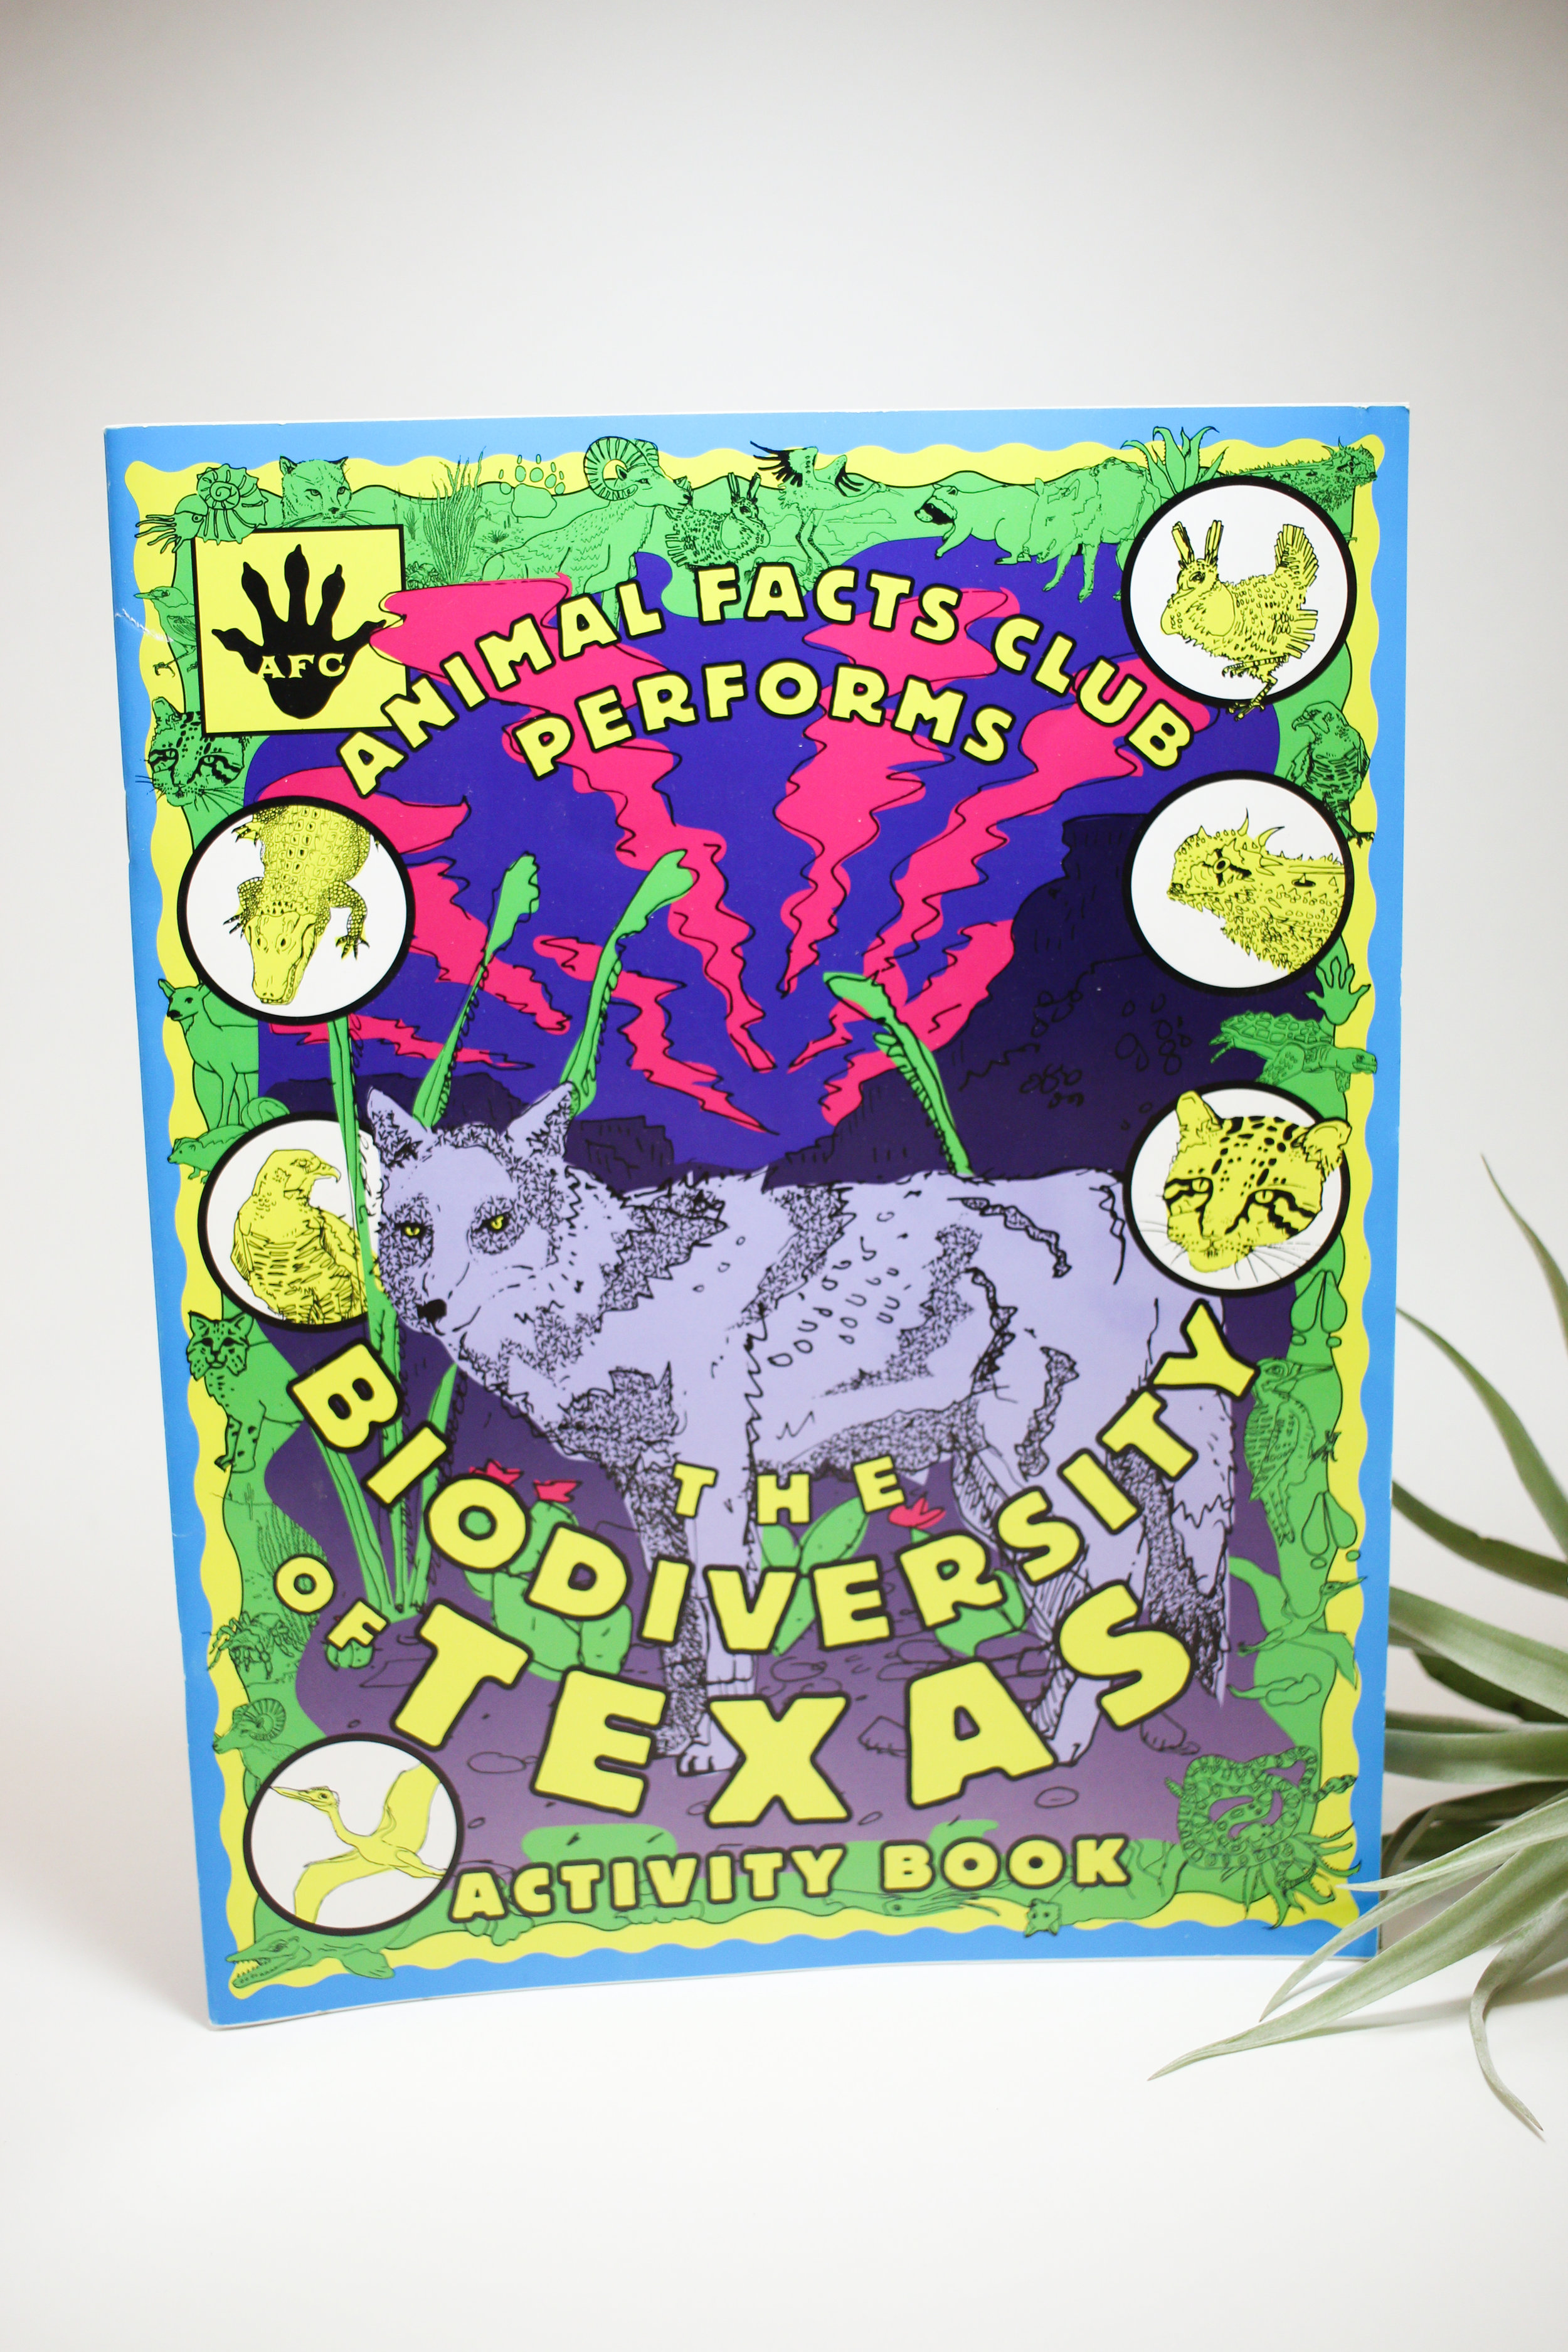 The Biodiversity of Texas Activity Book by Animal Facts Club